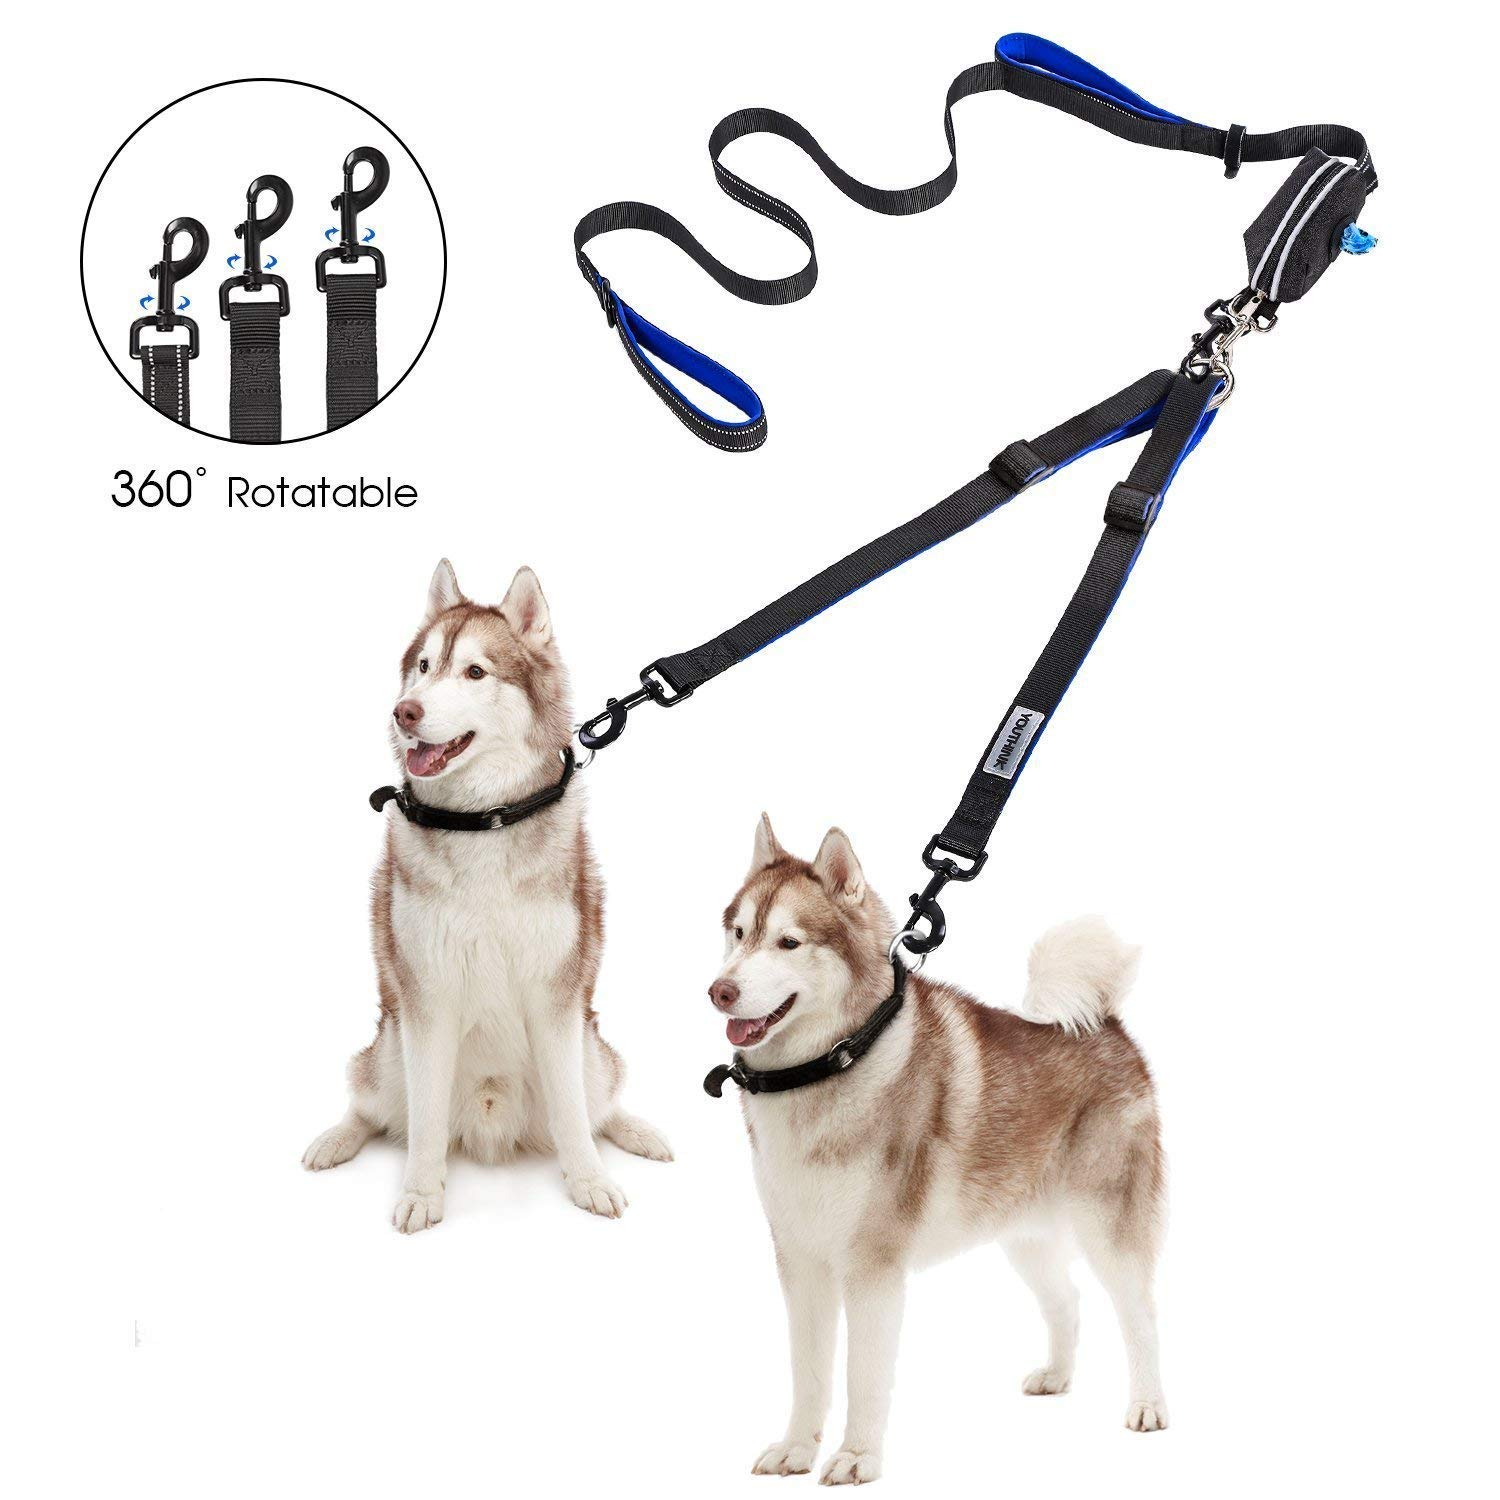 YOUTHINK Double Dog Leash, No Tangle Dog Walking Leash 2 Dogs up to 180lbs, Comfortable Adjustable Dual Padded Handles, Bonus Pet Waste Bag (Double Dog Leash) by YOUTHINK